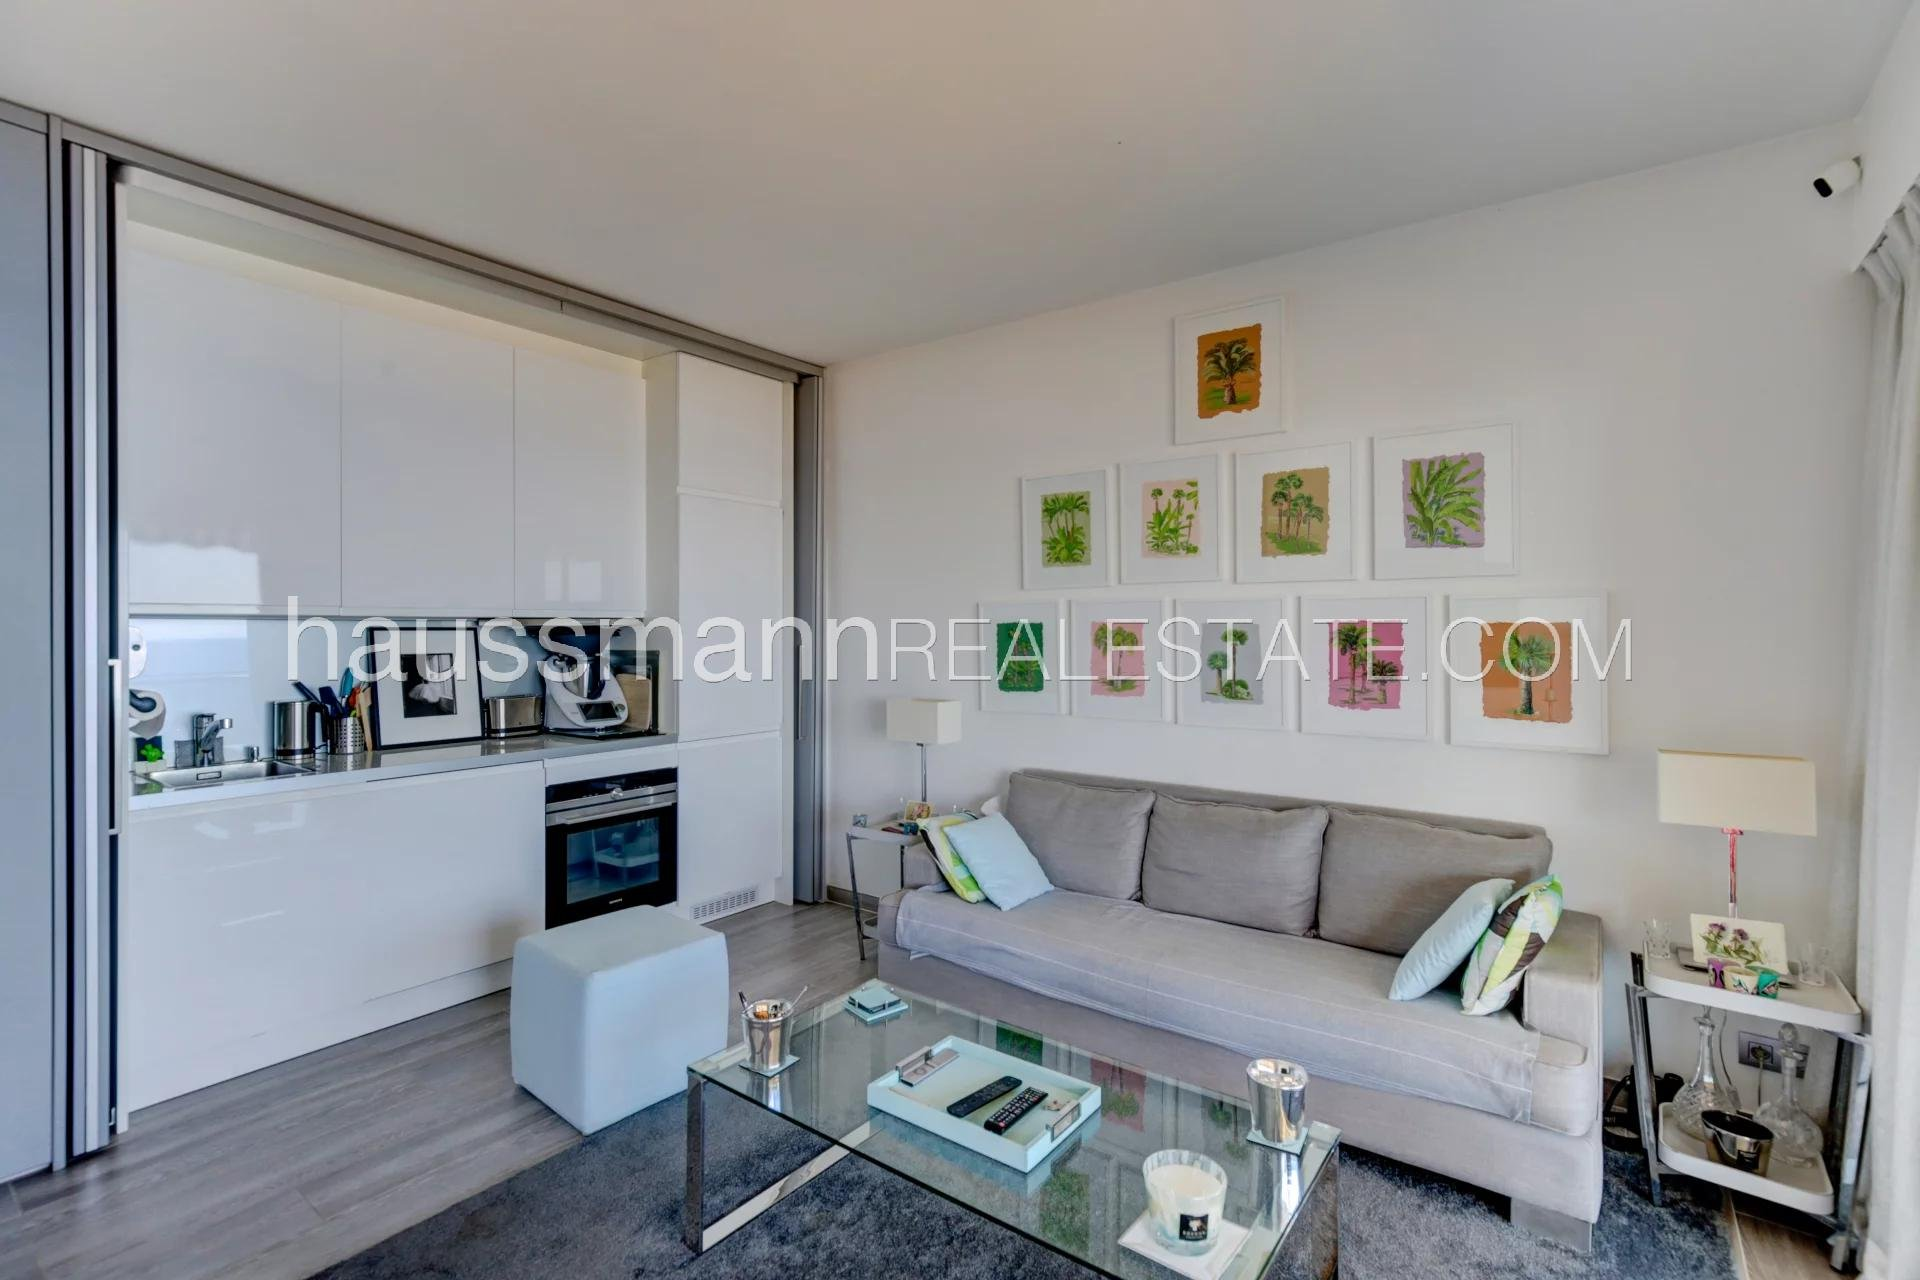 Buying Apartment Beaulieu-sur-Mer near beaches, top floor one bedroom apartment with panoramic sea view